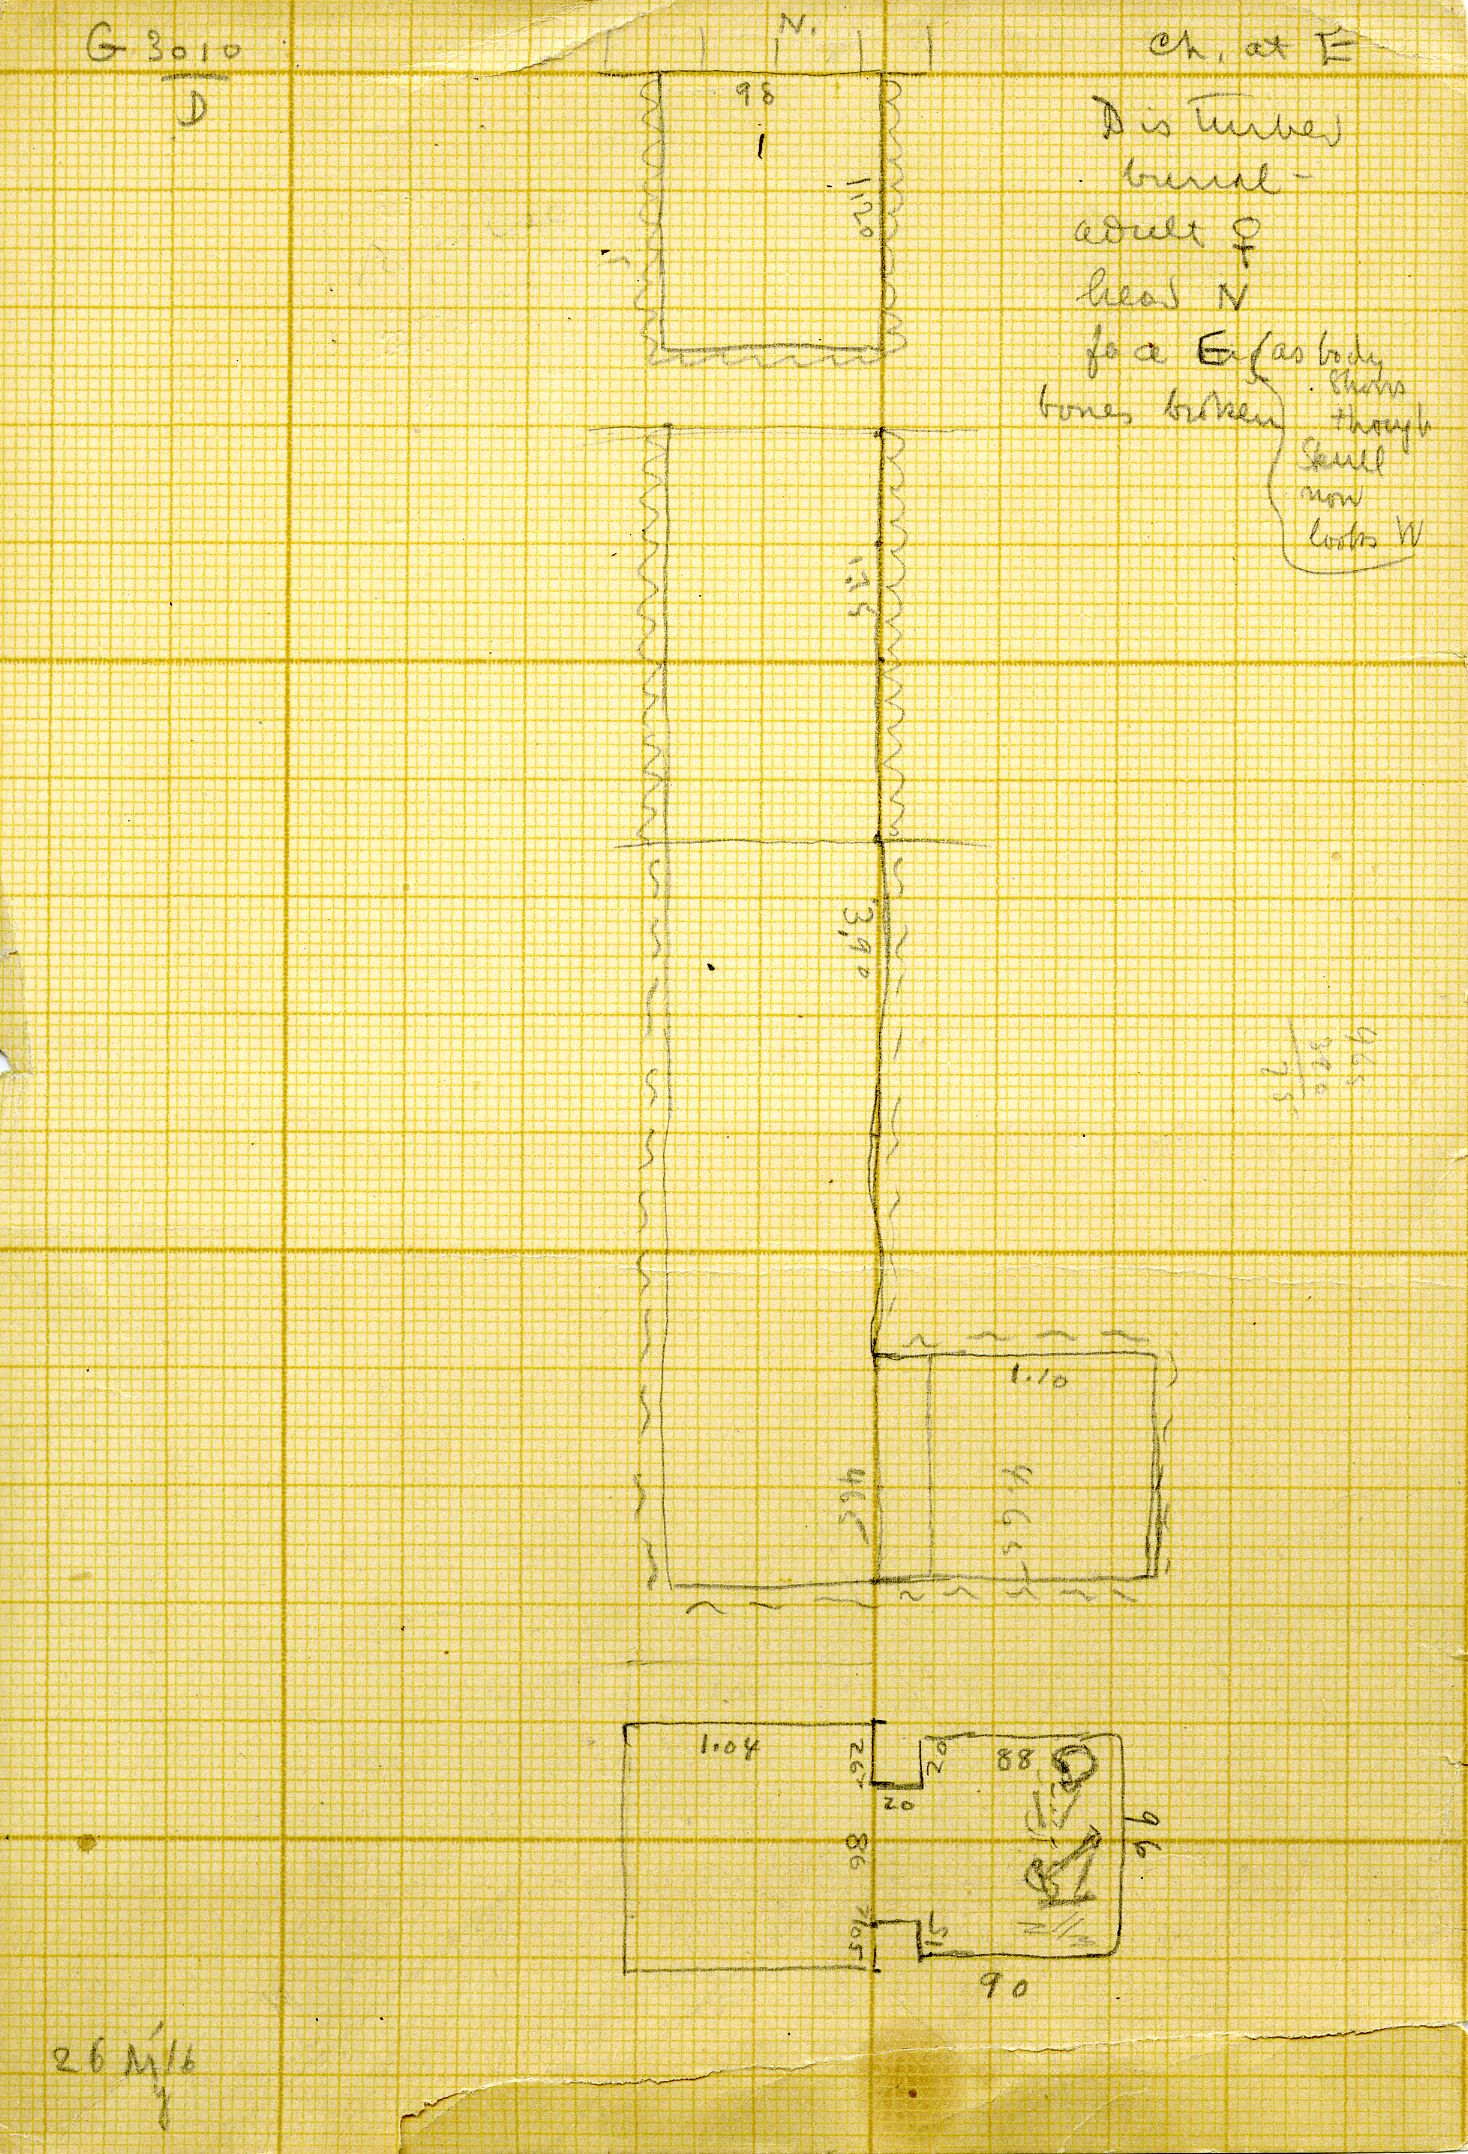 Maps and plans: G 3010, Shaft D